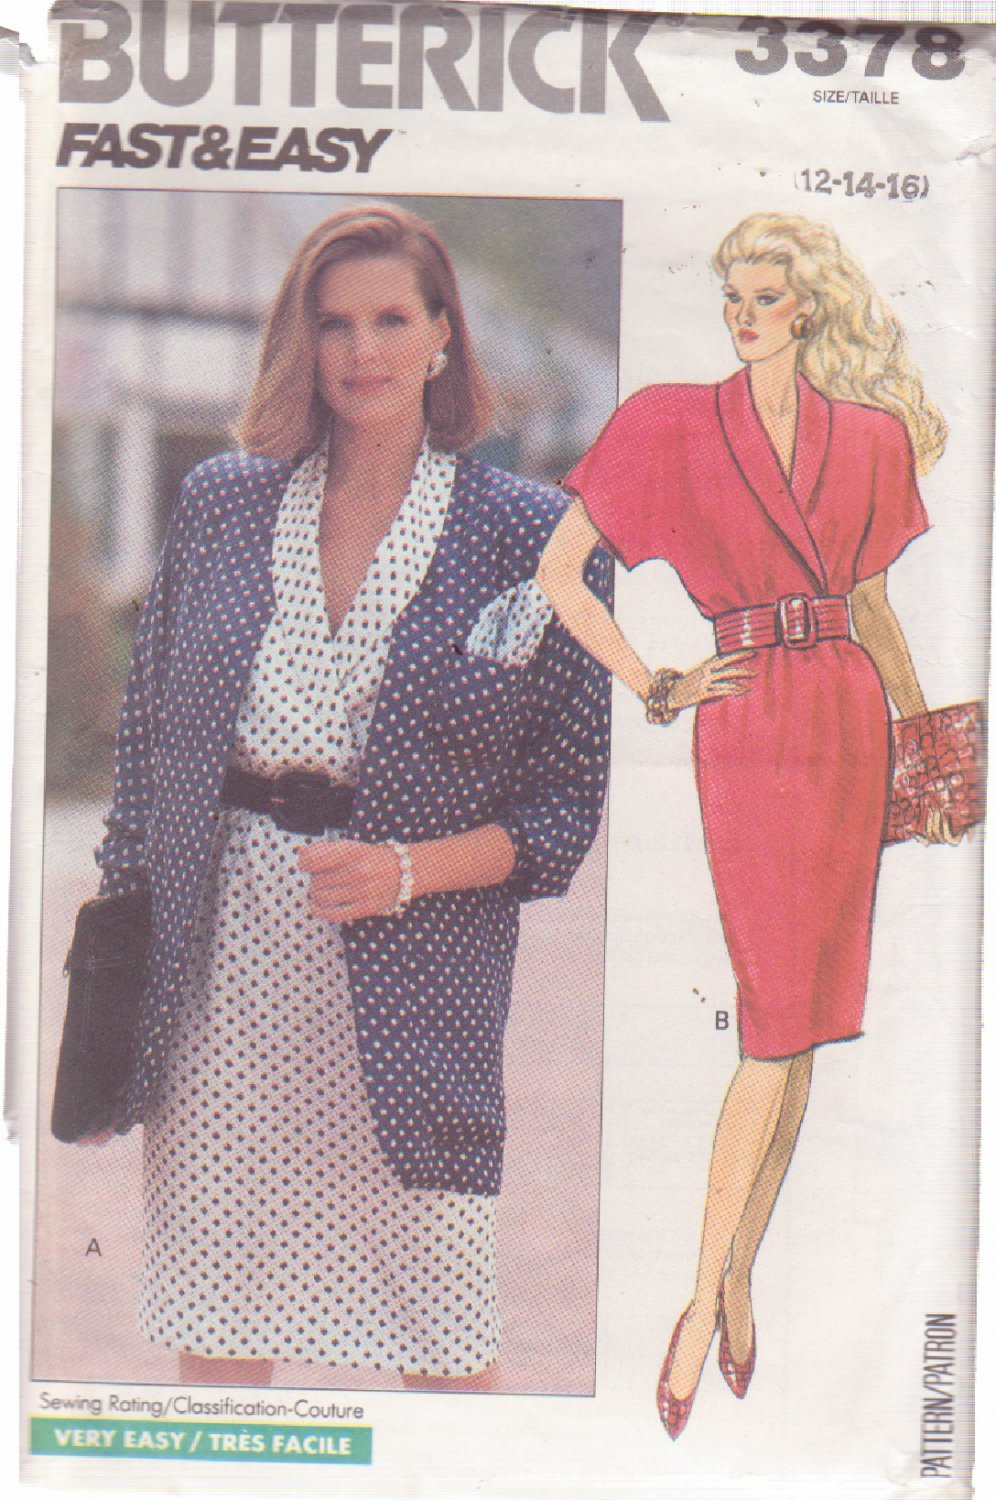 Butterick pattern 3378 Misses� jacket and dress sizes 12/14